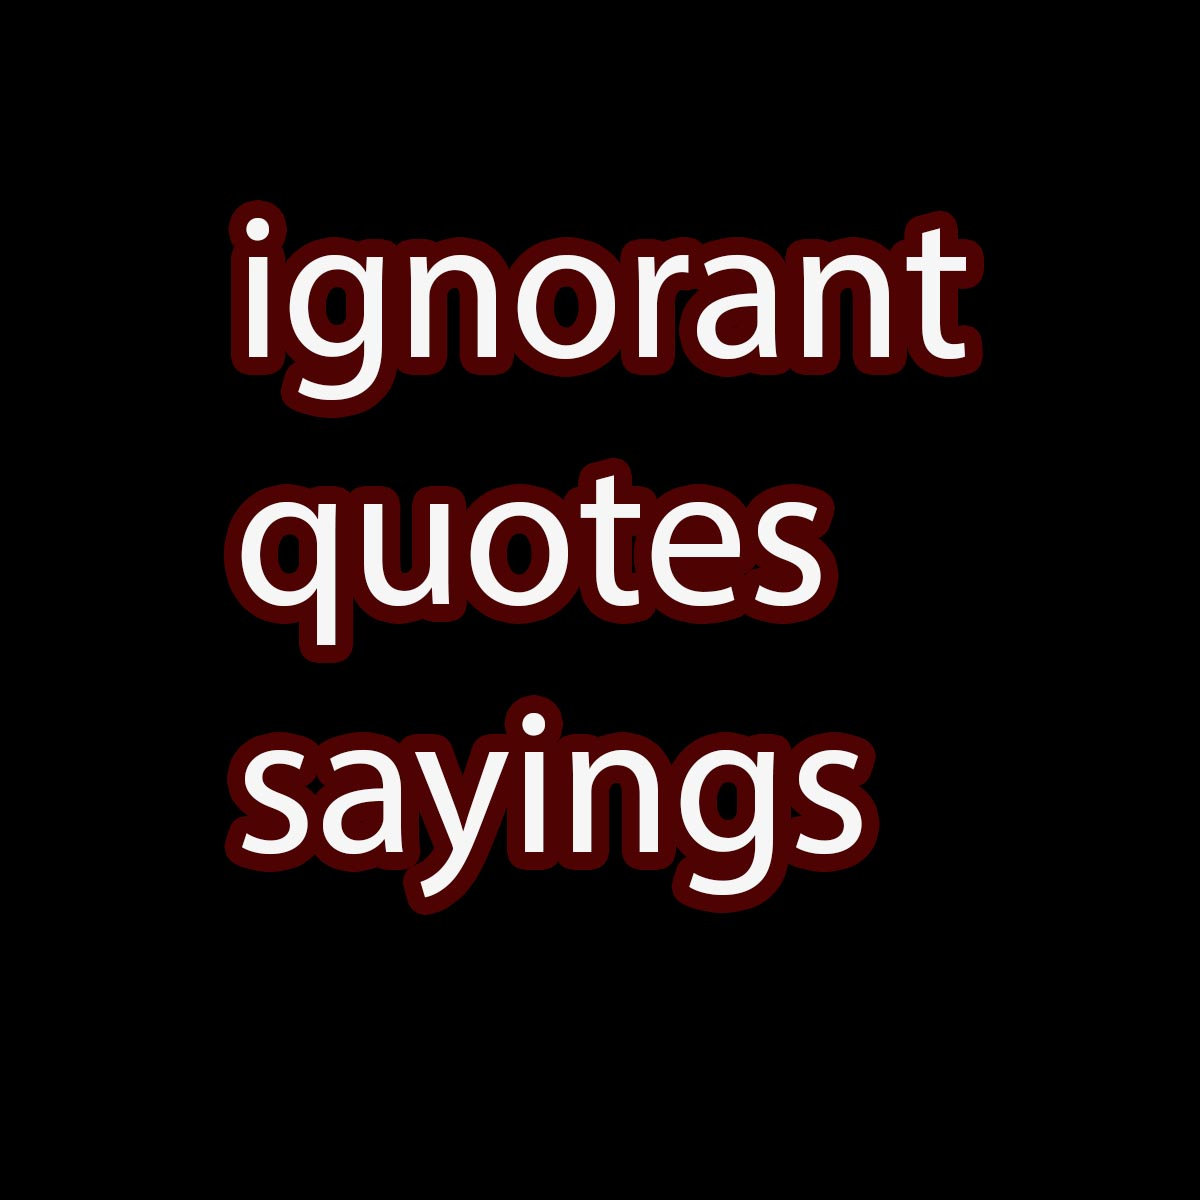 ignorant quotes sayings